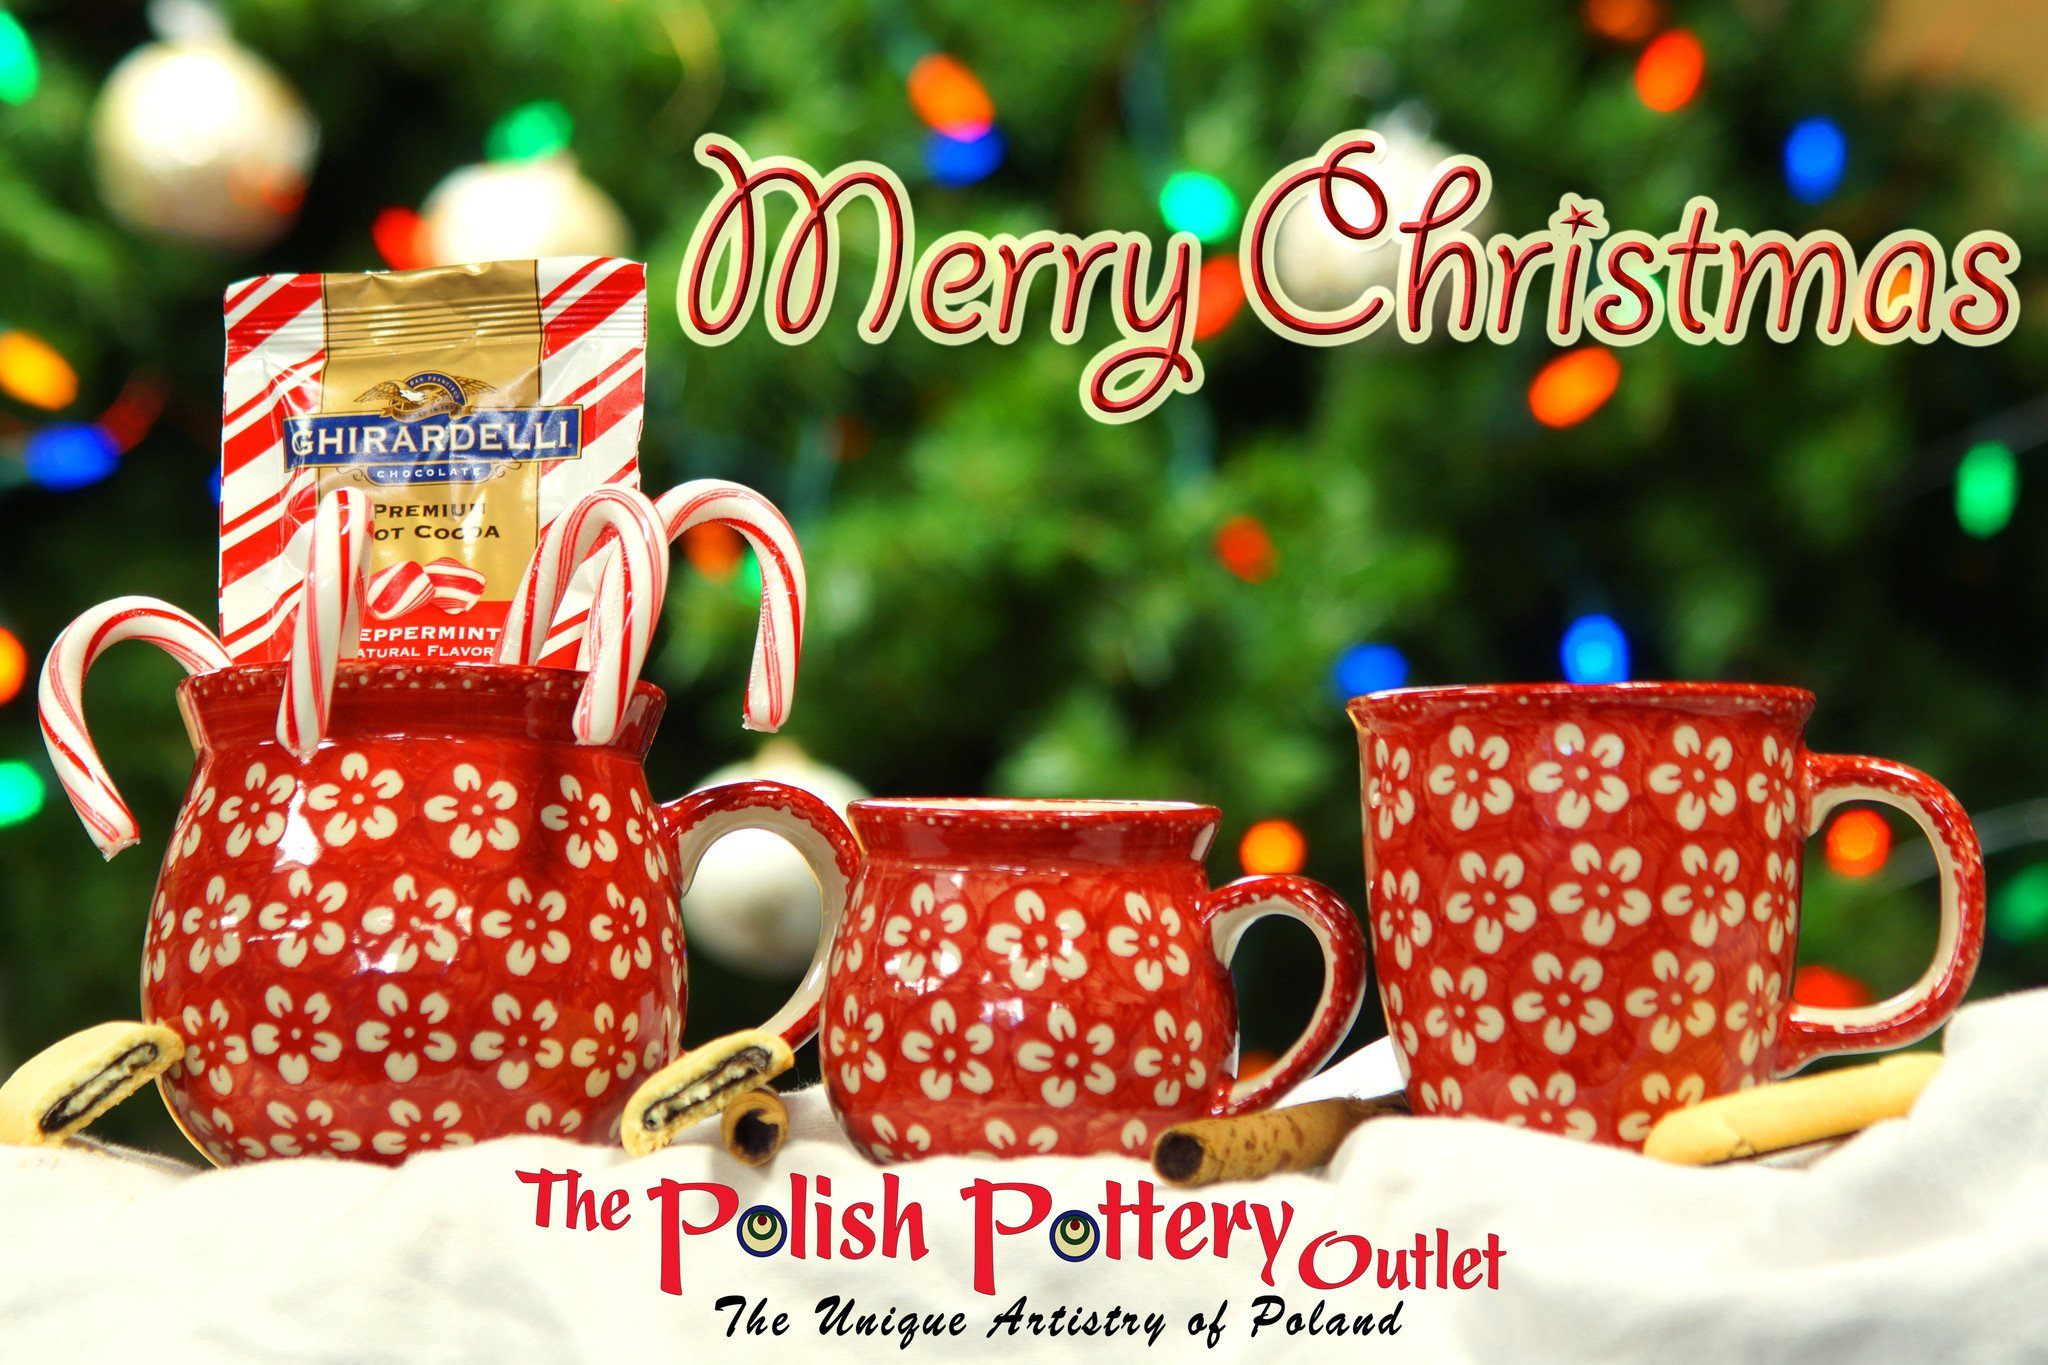 Electronic Gift Cards - The Polish Pottery Outlet